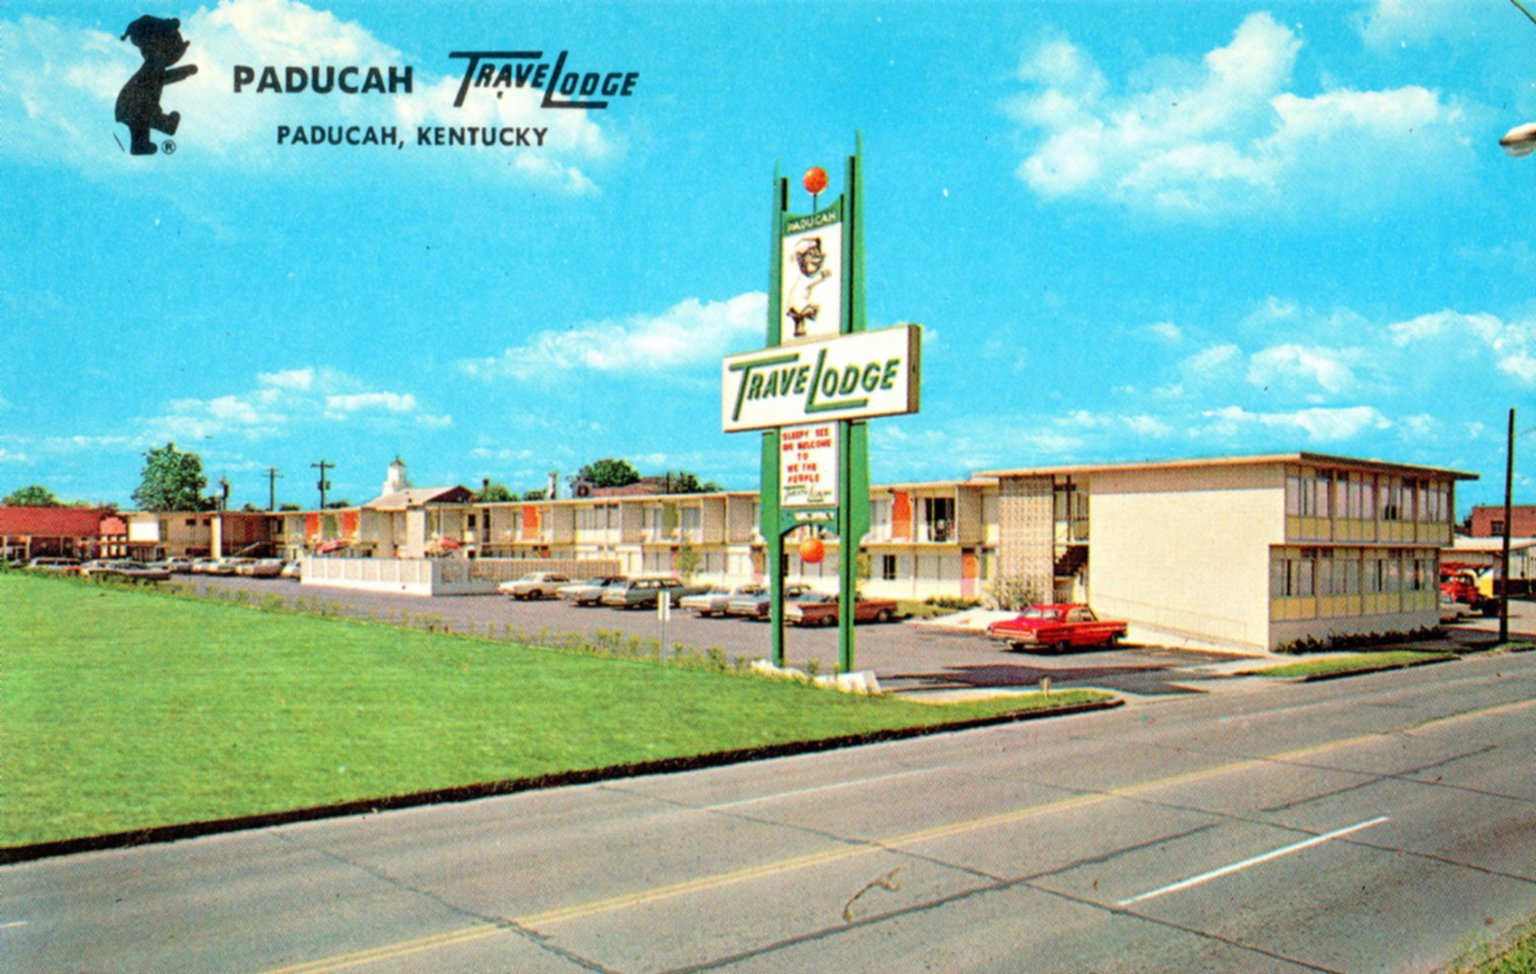 Paducah, Travelodge, Paducah, Kentucky